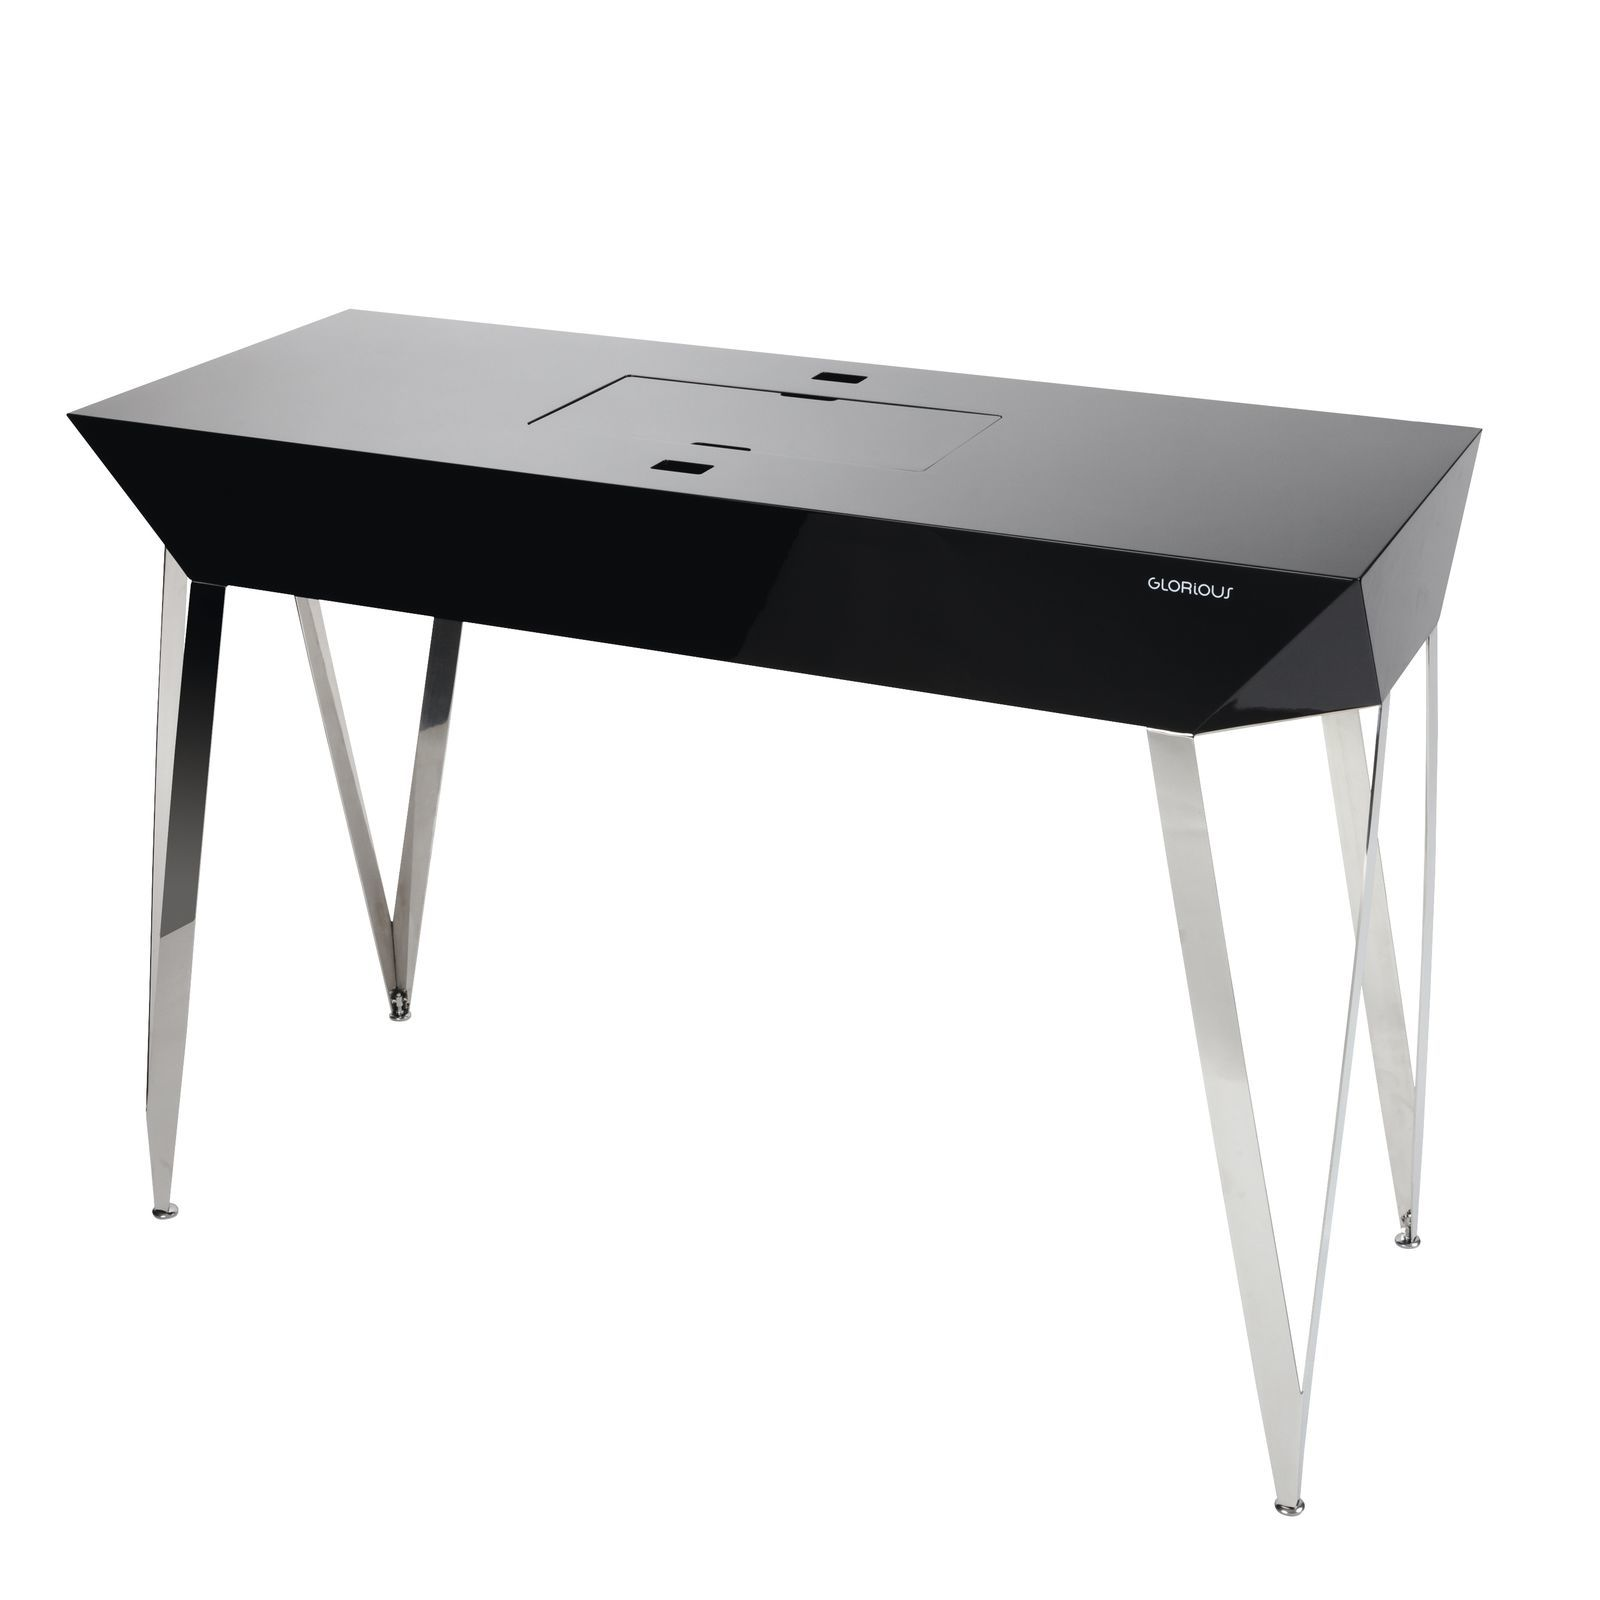 Glorious Glorious Diamond Black DJ-Table 125 x 90 x 48 cm Product Image